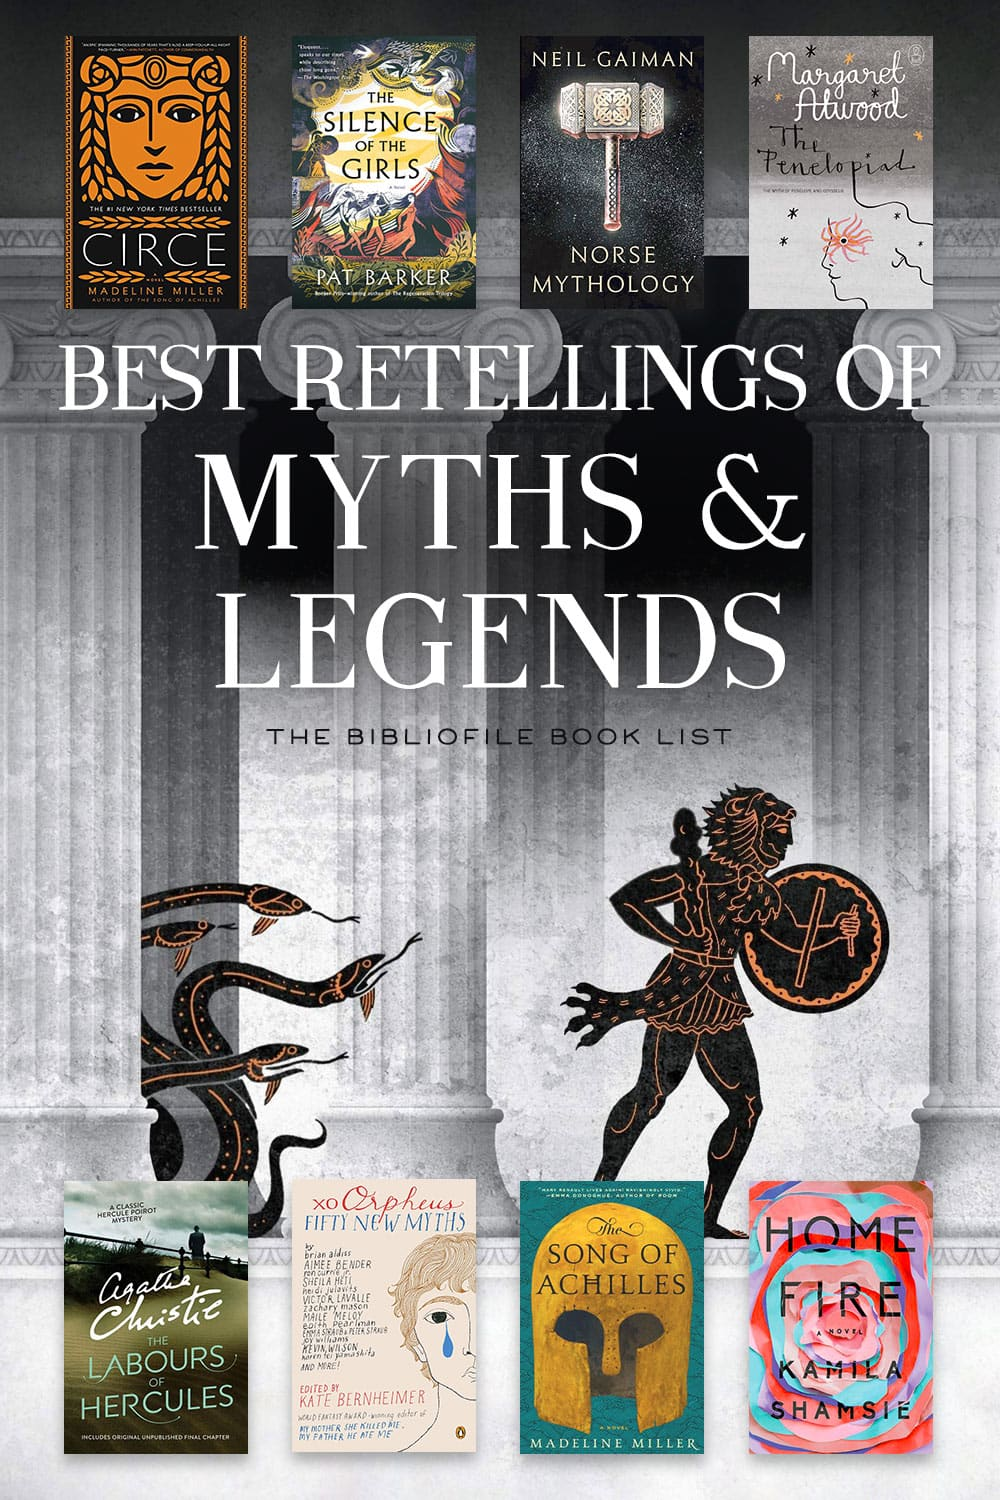 mythology myths legends retellings books novels